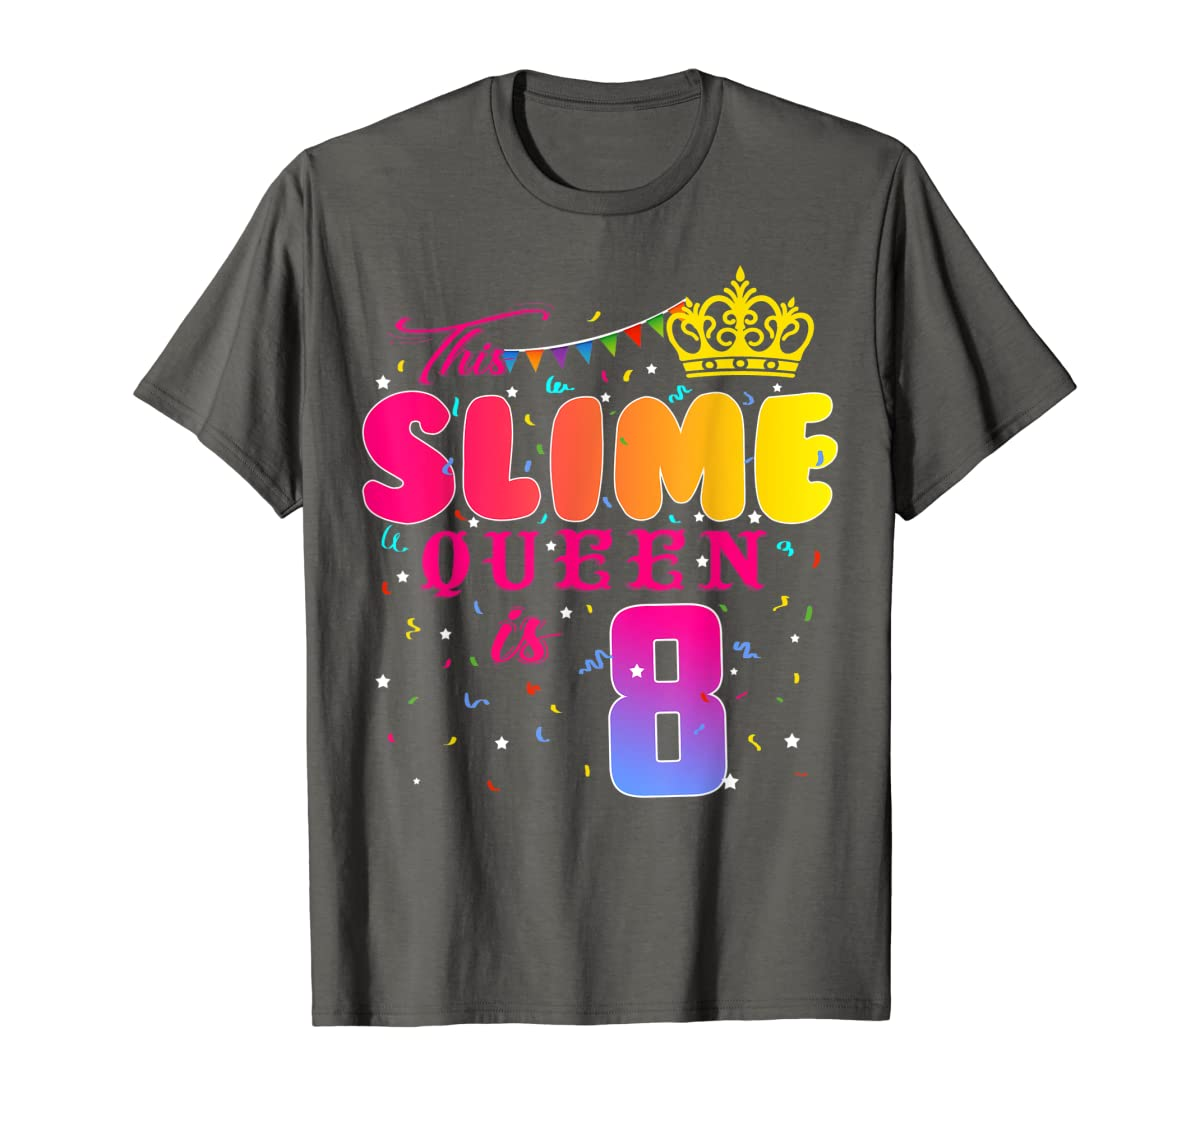 8 Years Old 8th Birthday Slime Queen Shirt Girl Gift Party-Men's T-Shirt-Dark Heather